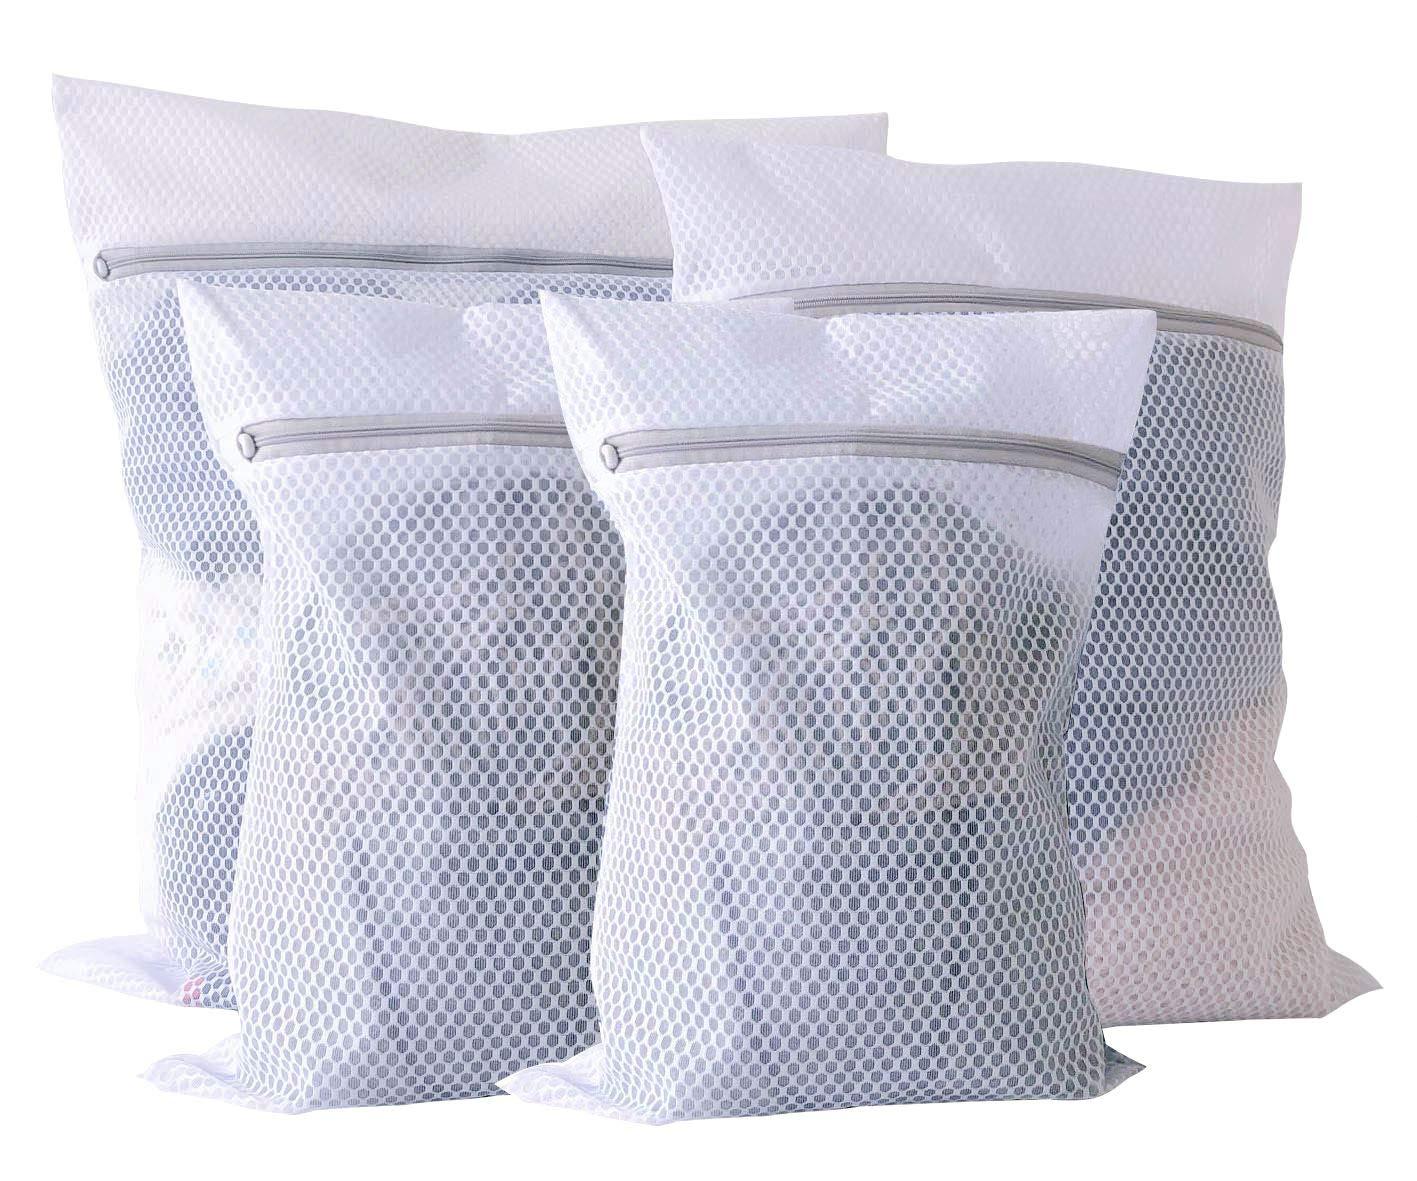 YouJia Extra Large Mesh Laundry Bag, Heavy Duty Pack of 4 Zippered Polyester Washing Bag, Washer and Dryer Safe Lingerie Laundry Bag for Clothes, Bed Sheet, Toys, Travel